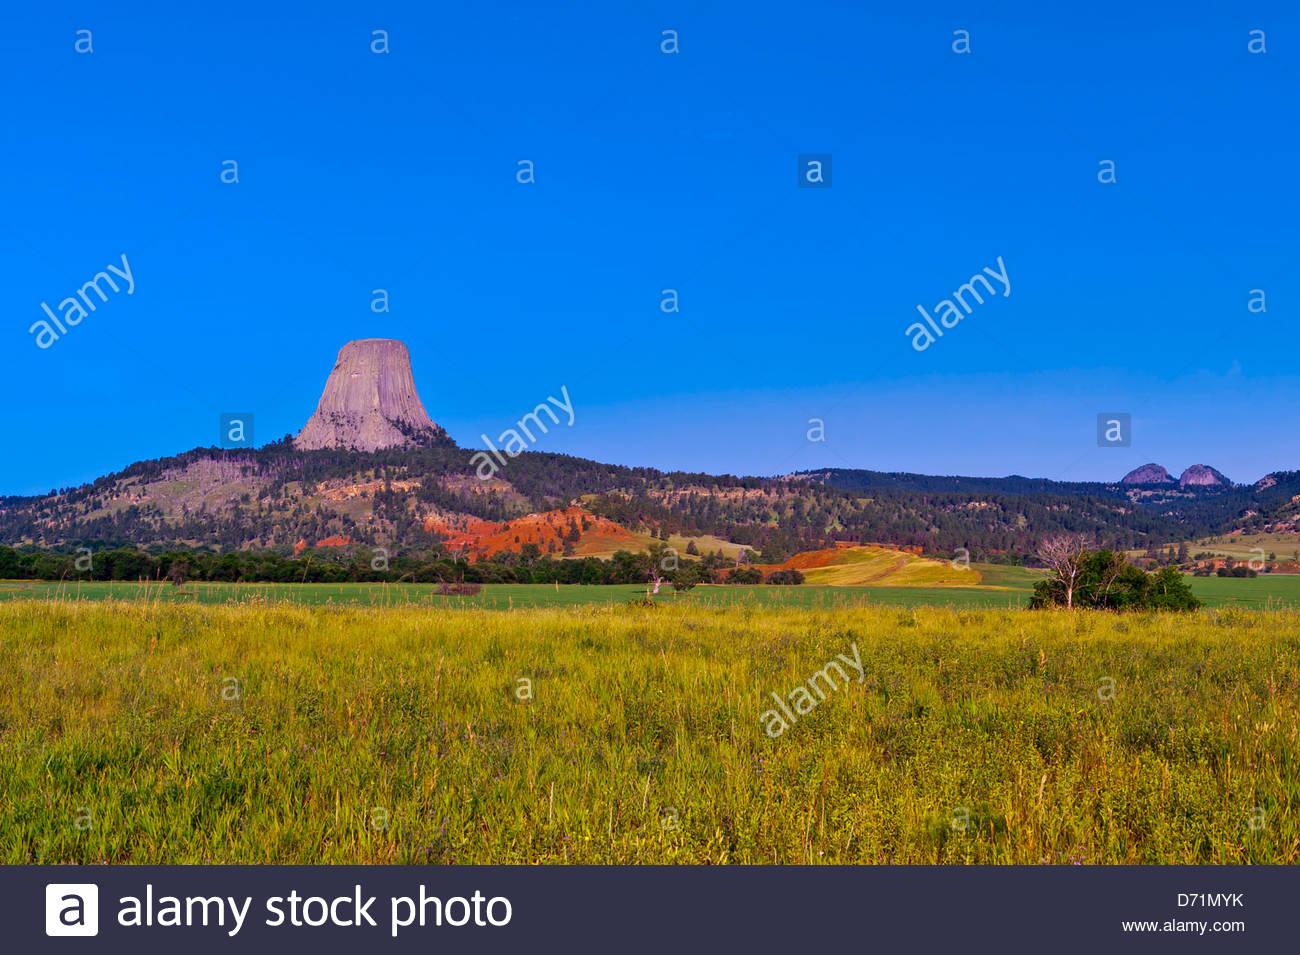 The 867 foot tall Devils Tower (a granite monolith which is a sacred site to American Indians), Devils Tower National - Stock Image